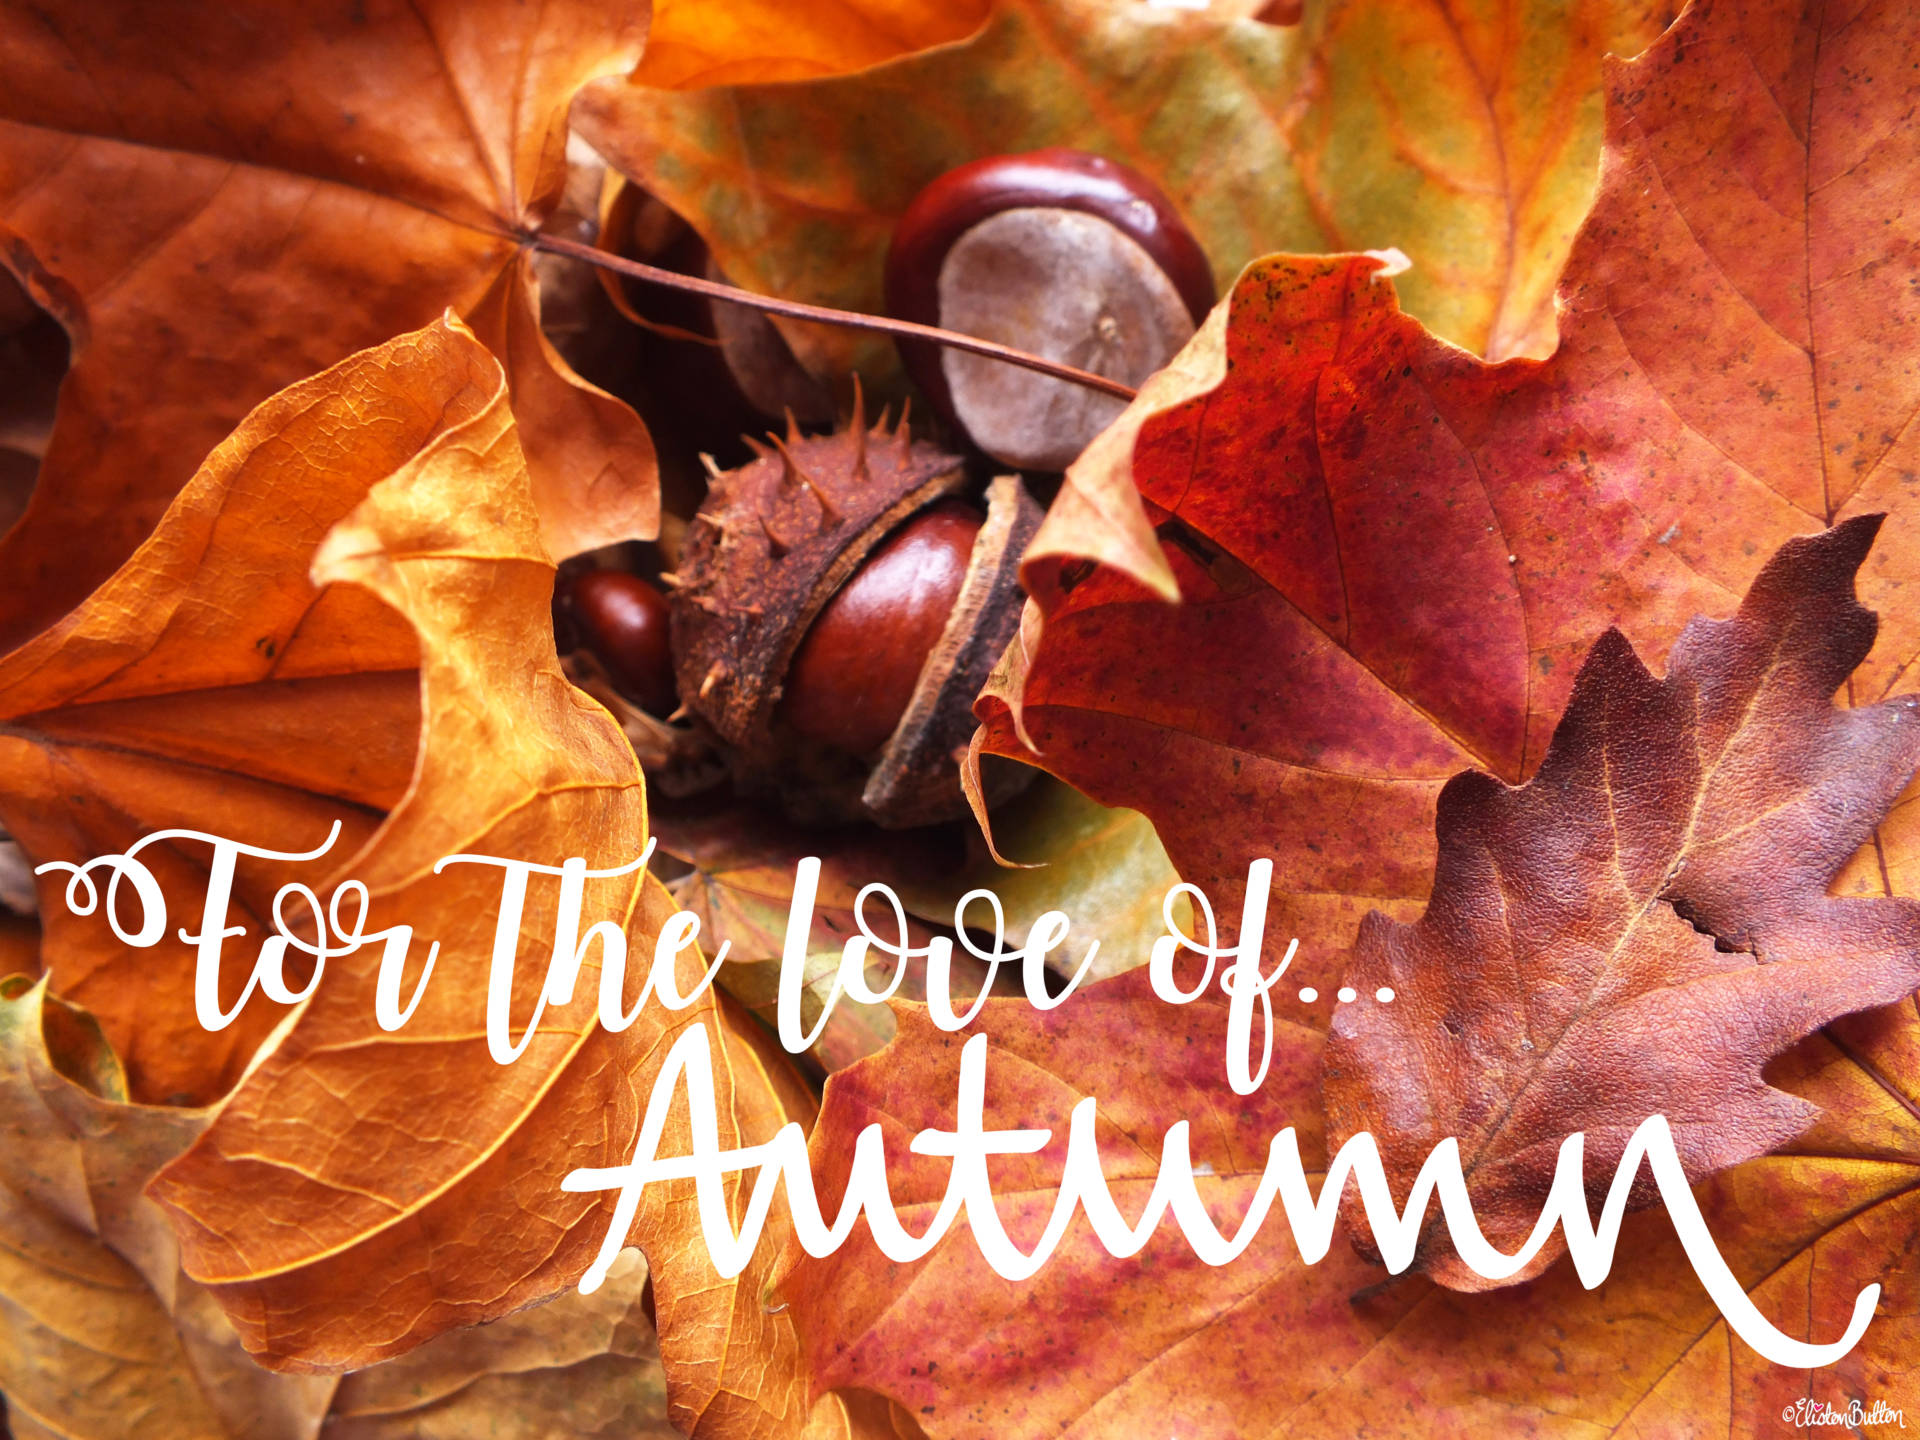 For the Love of Autumn by Eliston Button - Autumn Fall Leaves and Horse Chestnut Conkers - For the Love of…Autumn at www.elistonbutton.com - Eliston Button - That Crafty Kid – Art, Design, Craft & Adventure.